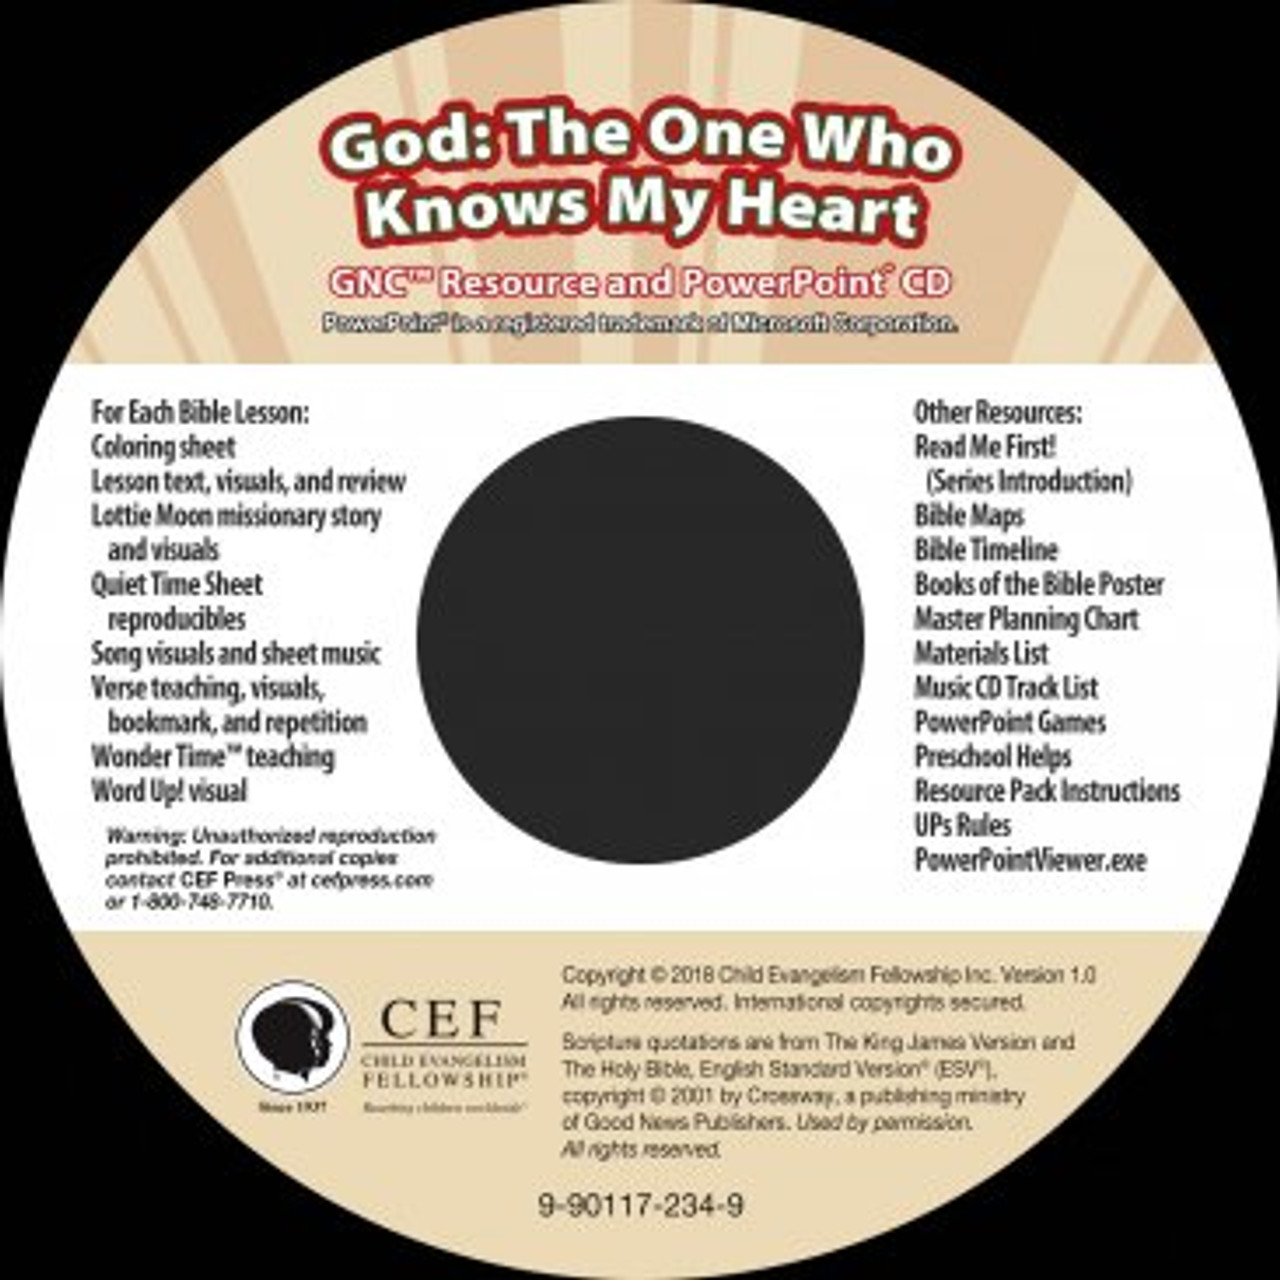 God: The One Who Knows My Heart (PPT) 2018